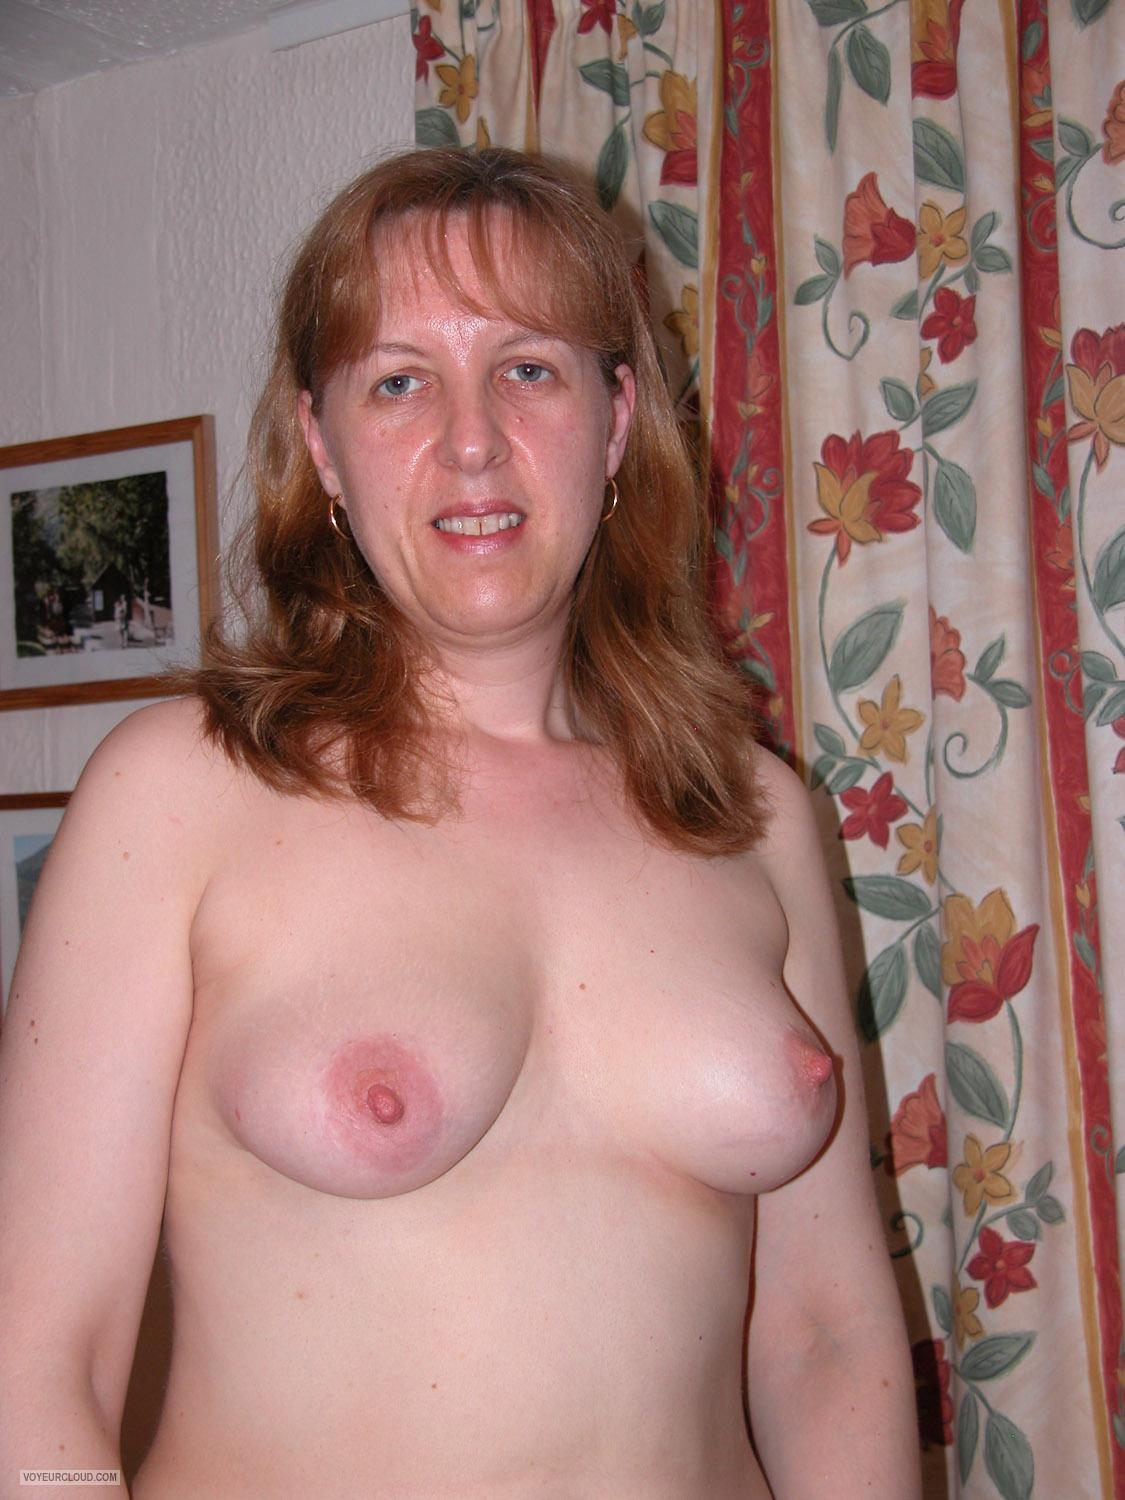 Medium Tits Of My Wife Topless English Wife